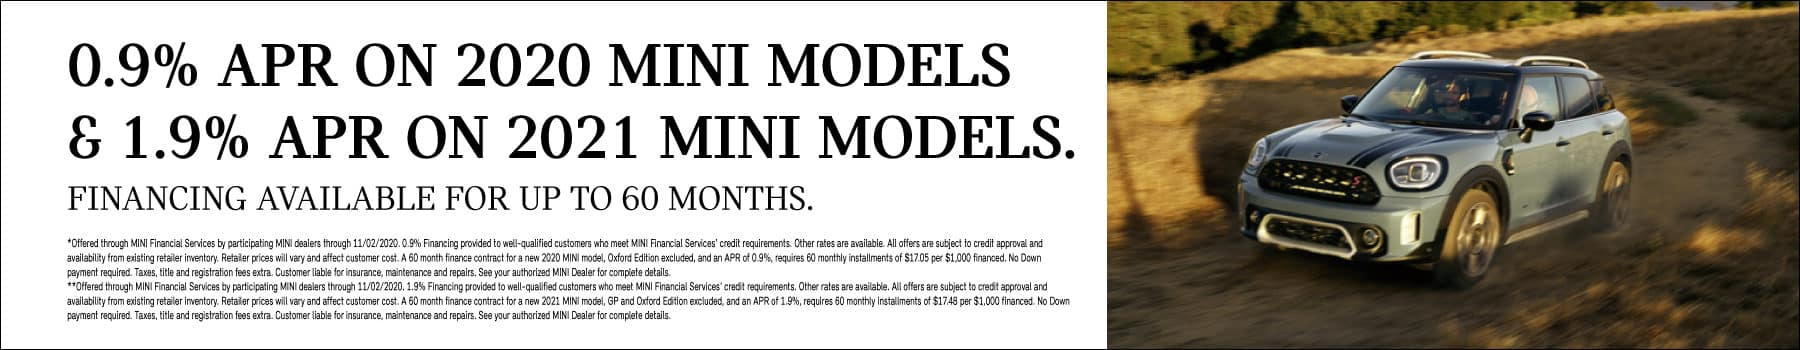 0.9% APR AND 1.9% APR FINANCING ON 2020 AND 2021 MINI MODELS.